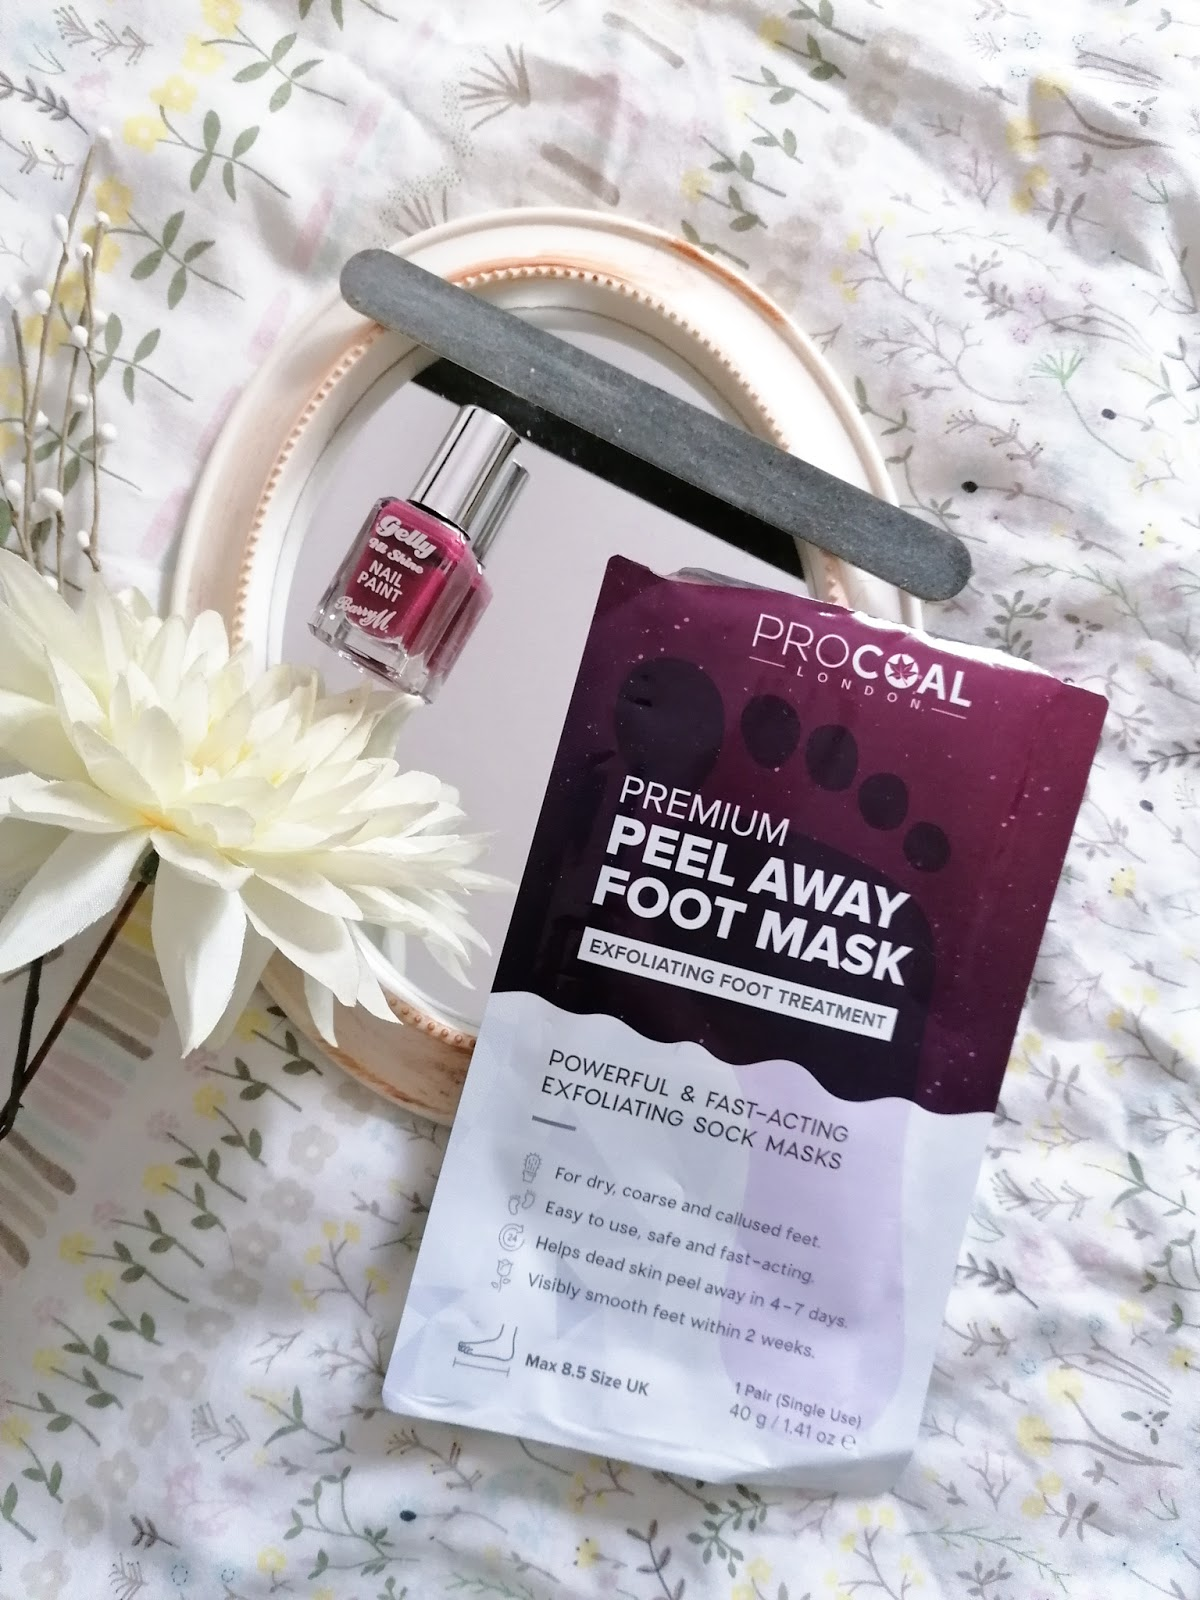 Procoal premium peel away foot mask review